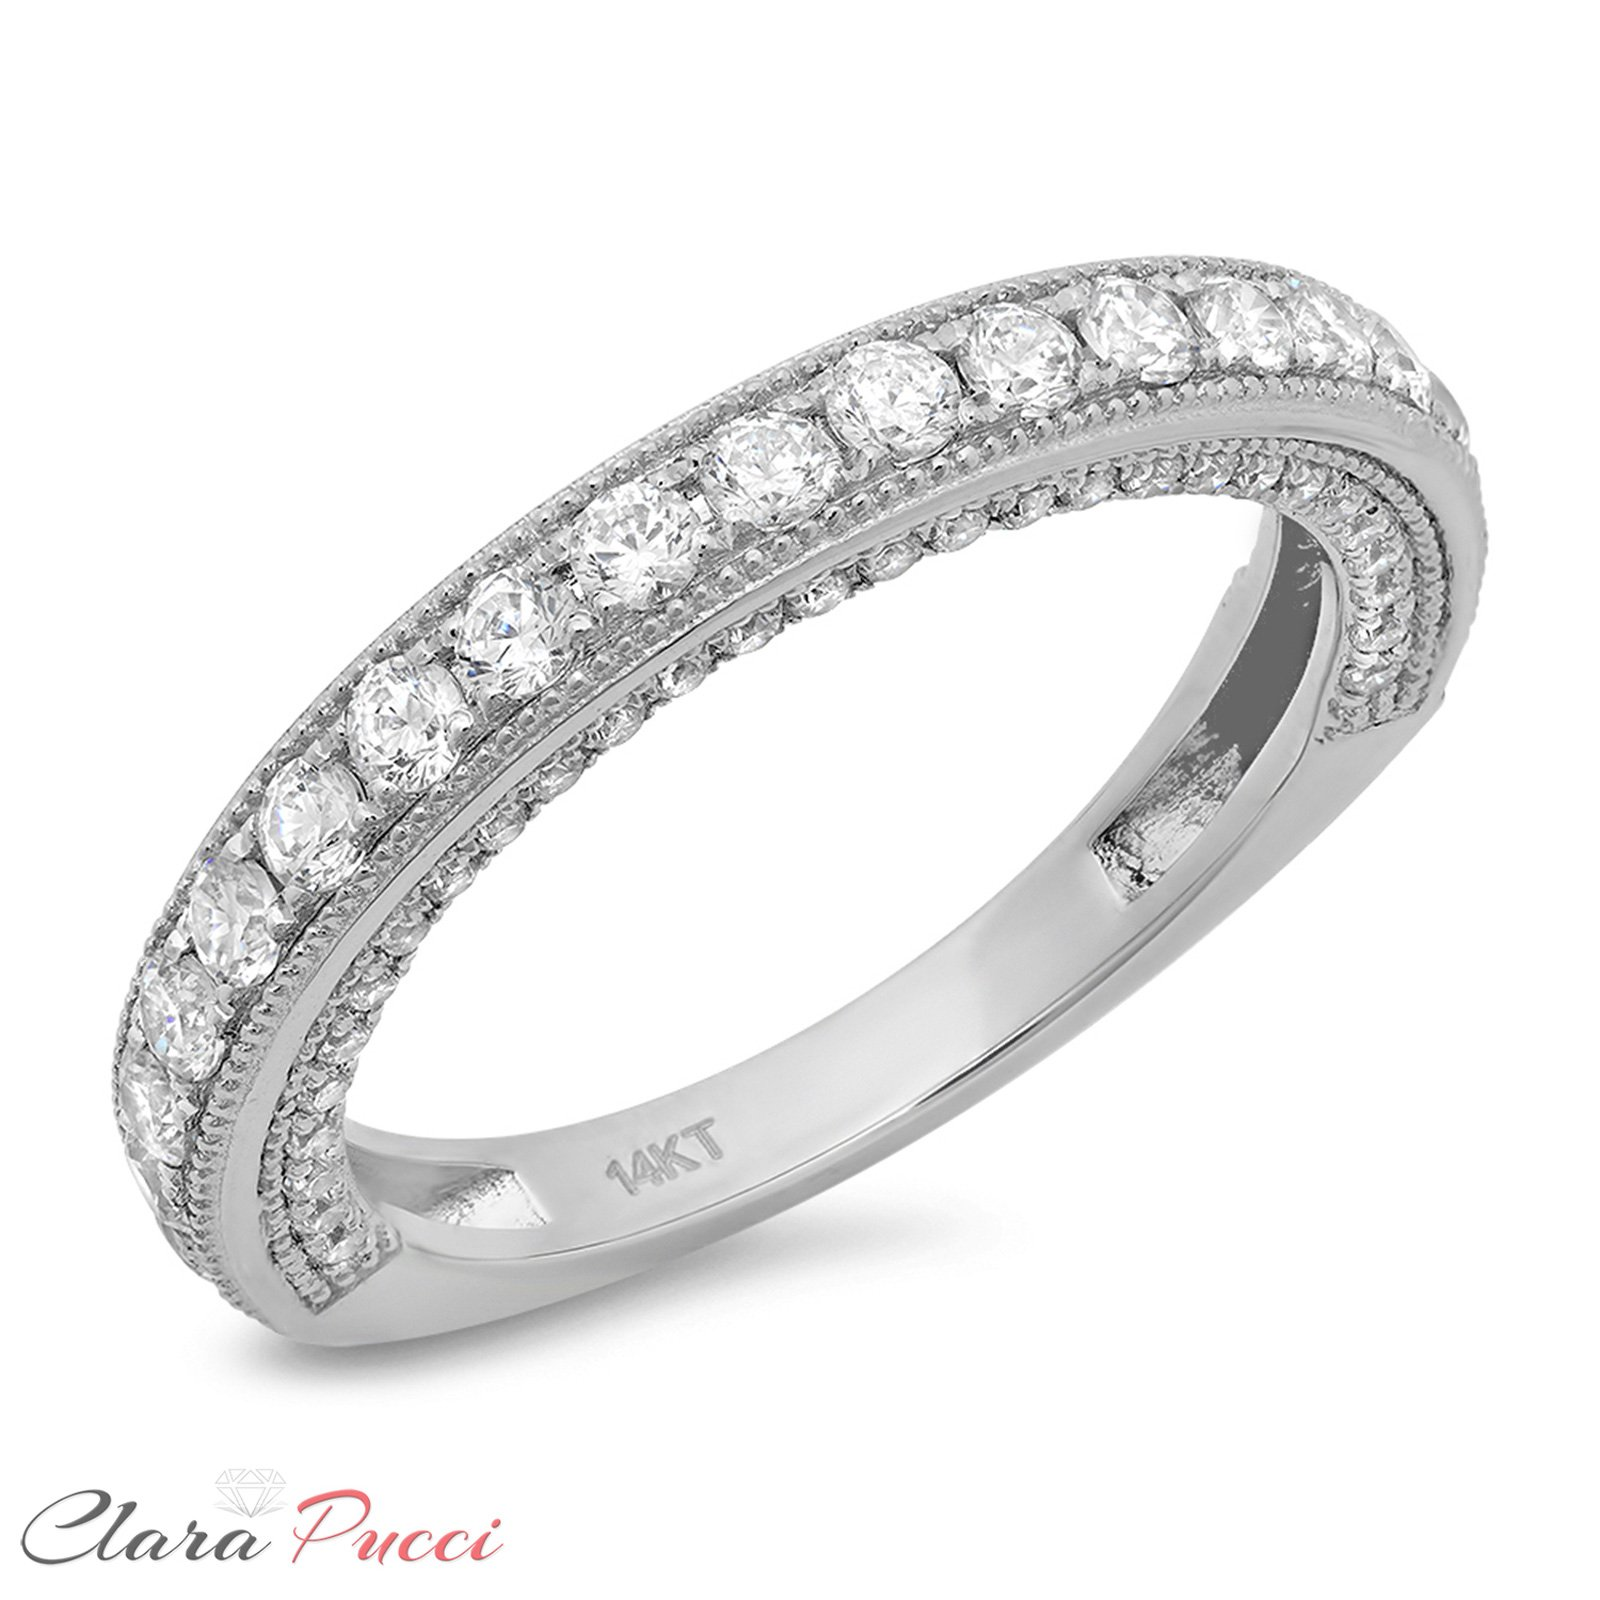 1.10 CT Round Cut CZ Pave Set Wedding Bridal Eternity Engagement Band Ring 14k White Gold, Size 8 by Clara Pucci (Image #5)